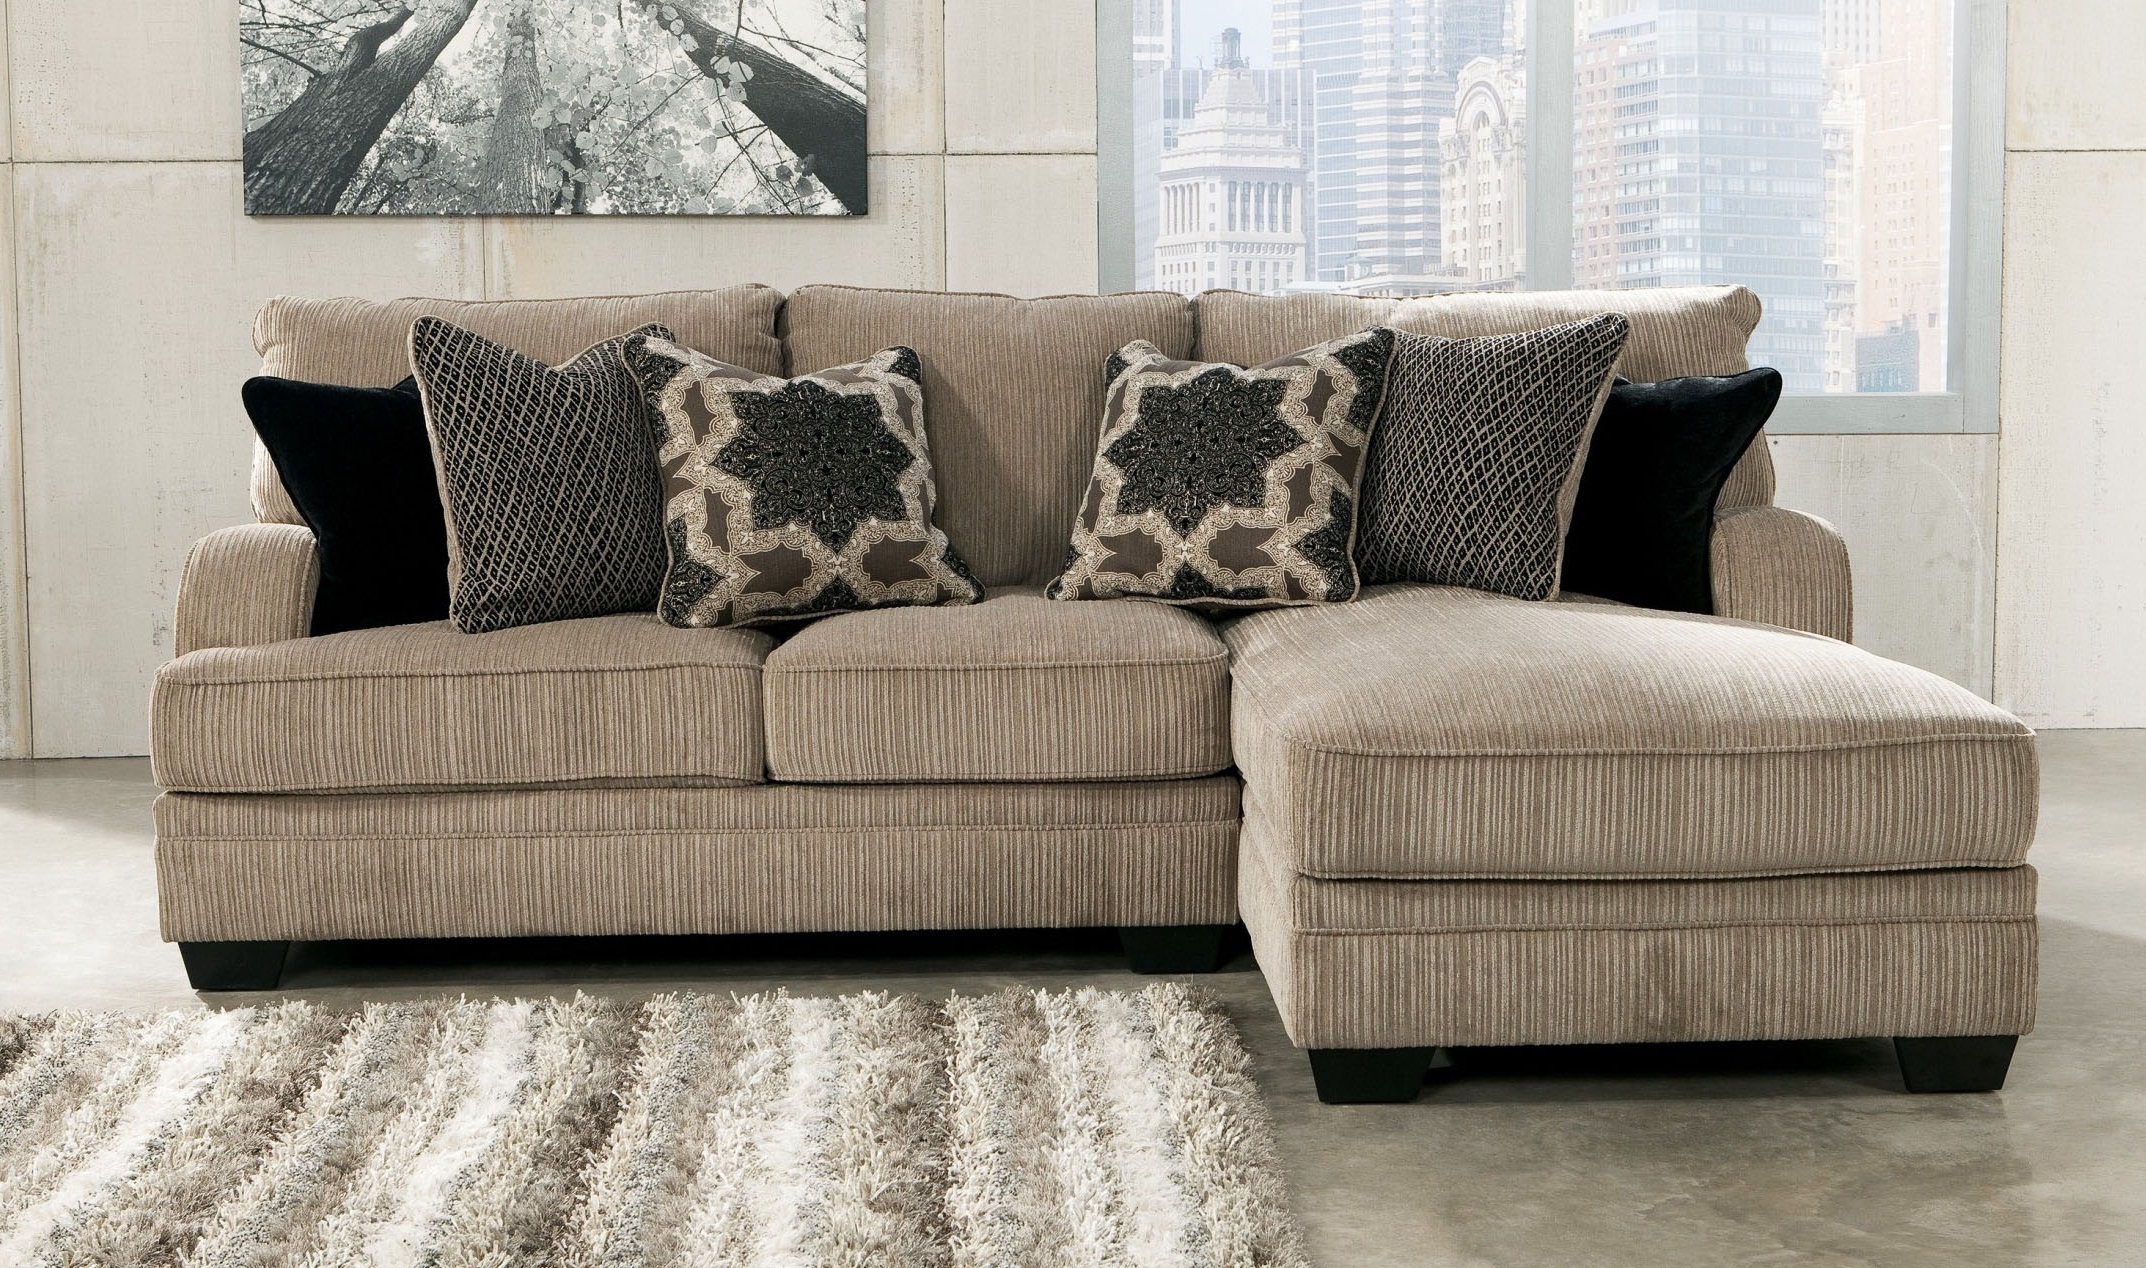 Favorite Small Sectional Furniture For The Best Looks Of Your House With Sectional Sofas For Small Places (View 15 of 15)